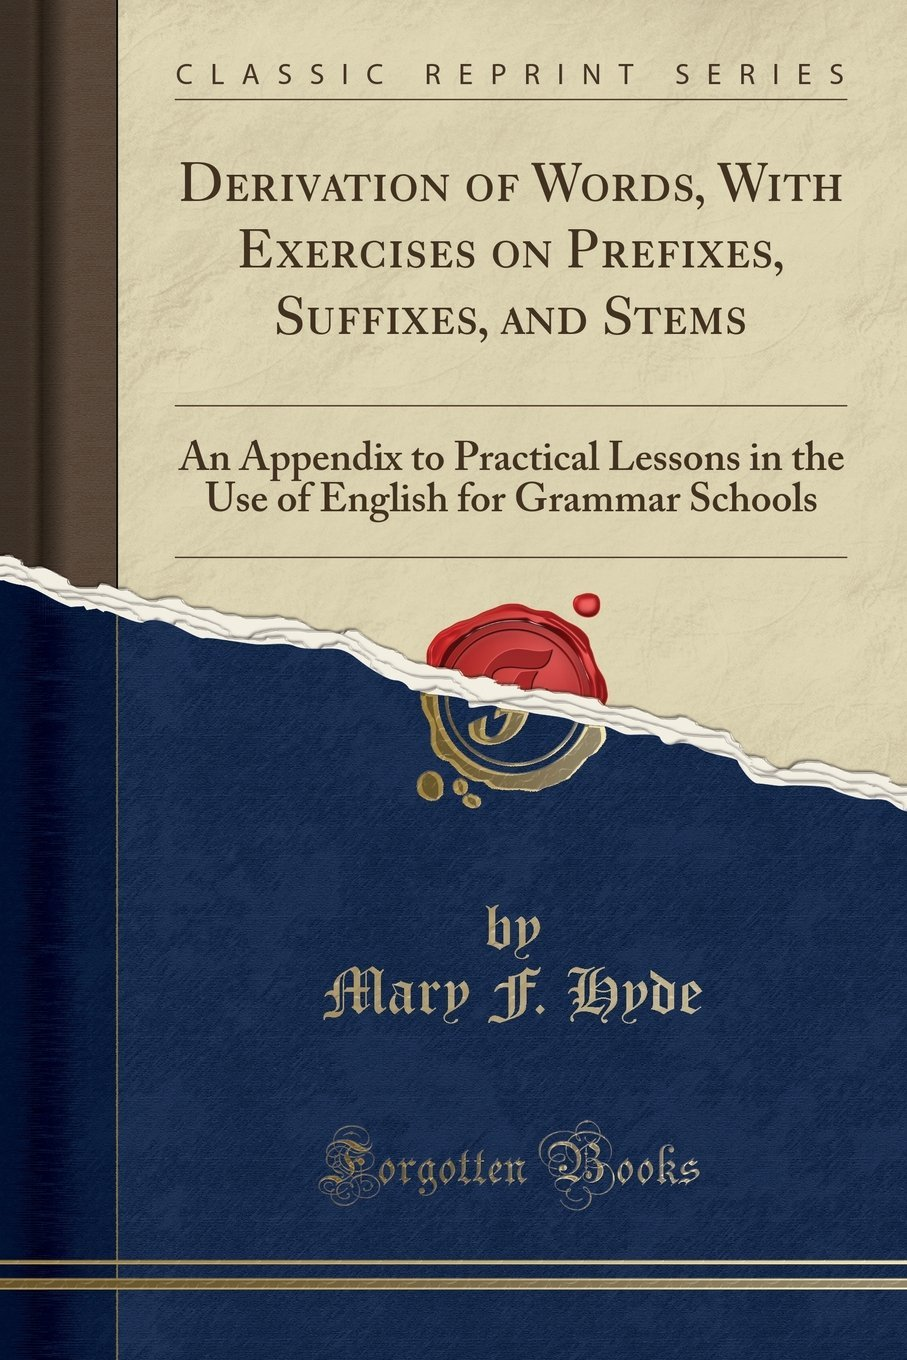 Read Online Derivation of Words, With Exercises on Prefixes, Suffixes, and Stems: An Appendix to Practical Lessons in the Use of English for Grammar Schools (Classic Reprint) PDF